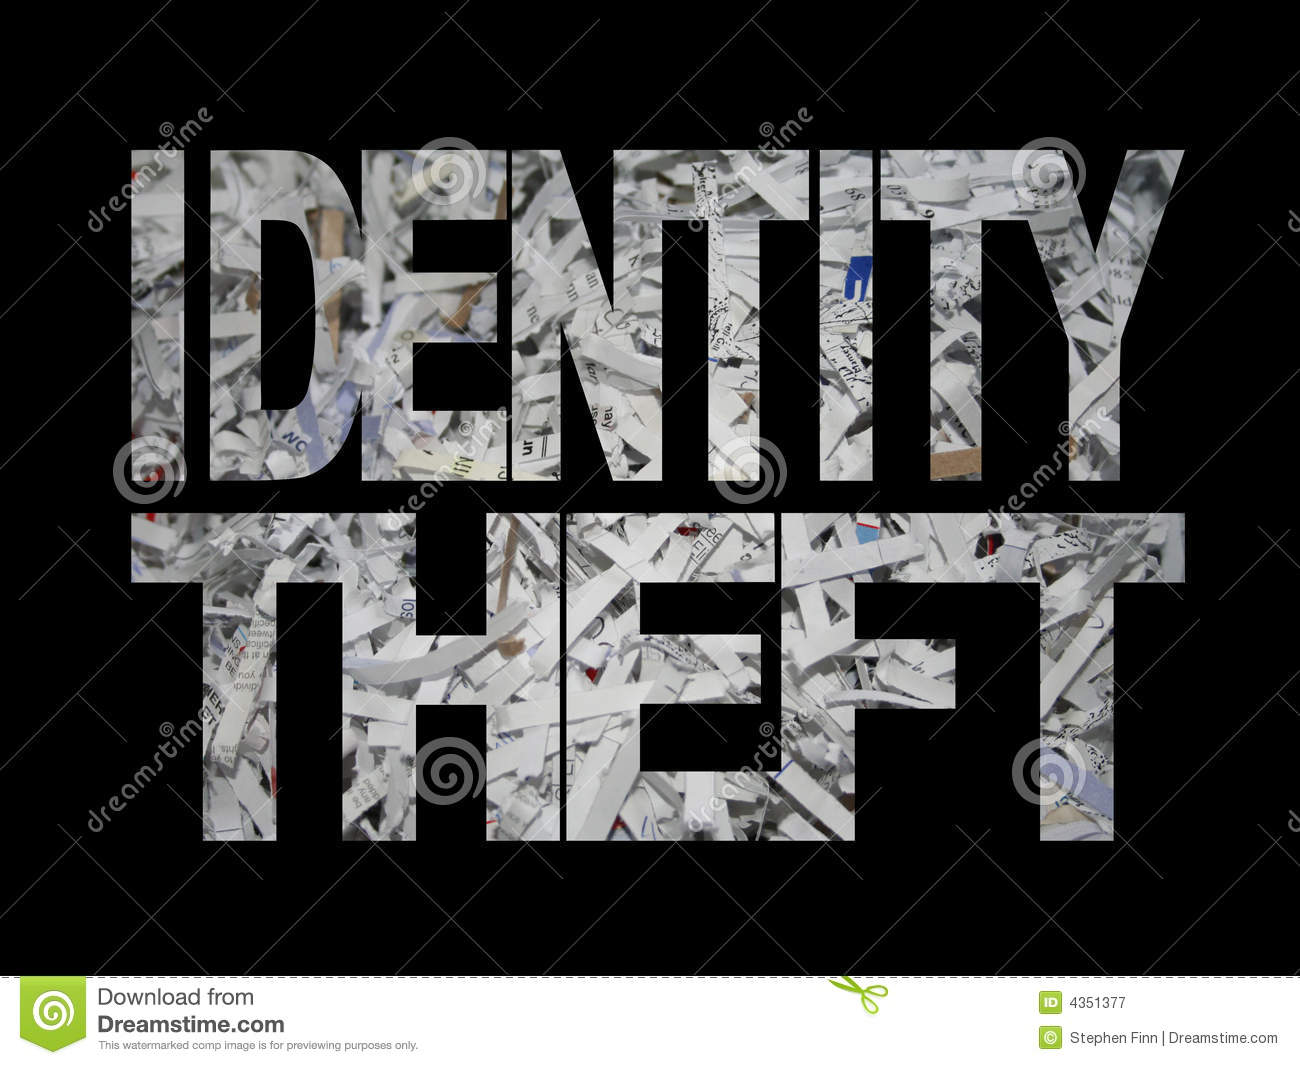 identity theft protection essay  identity theft protection essay